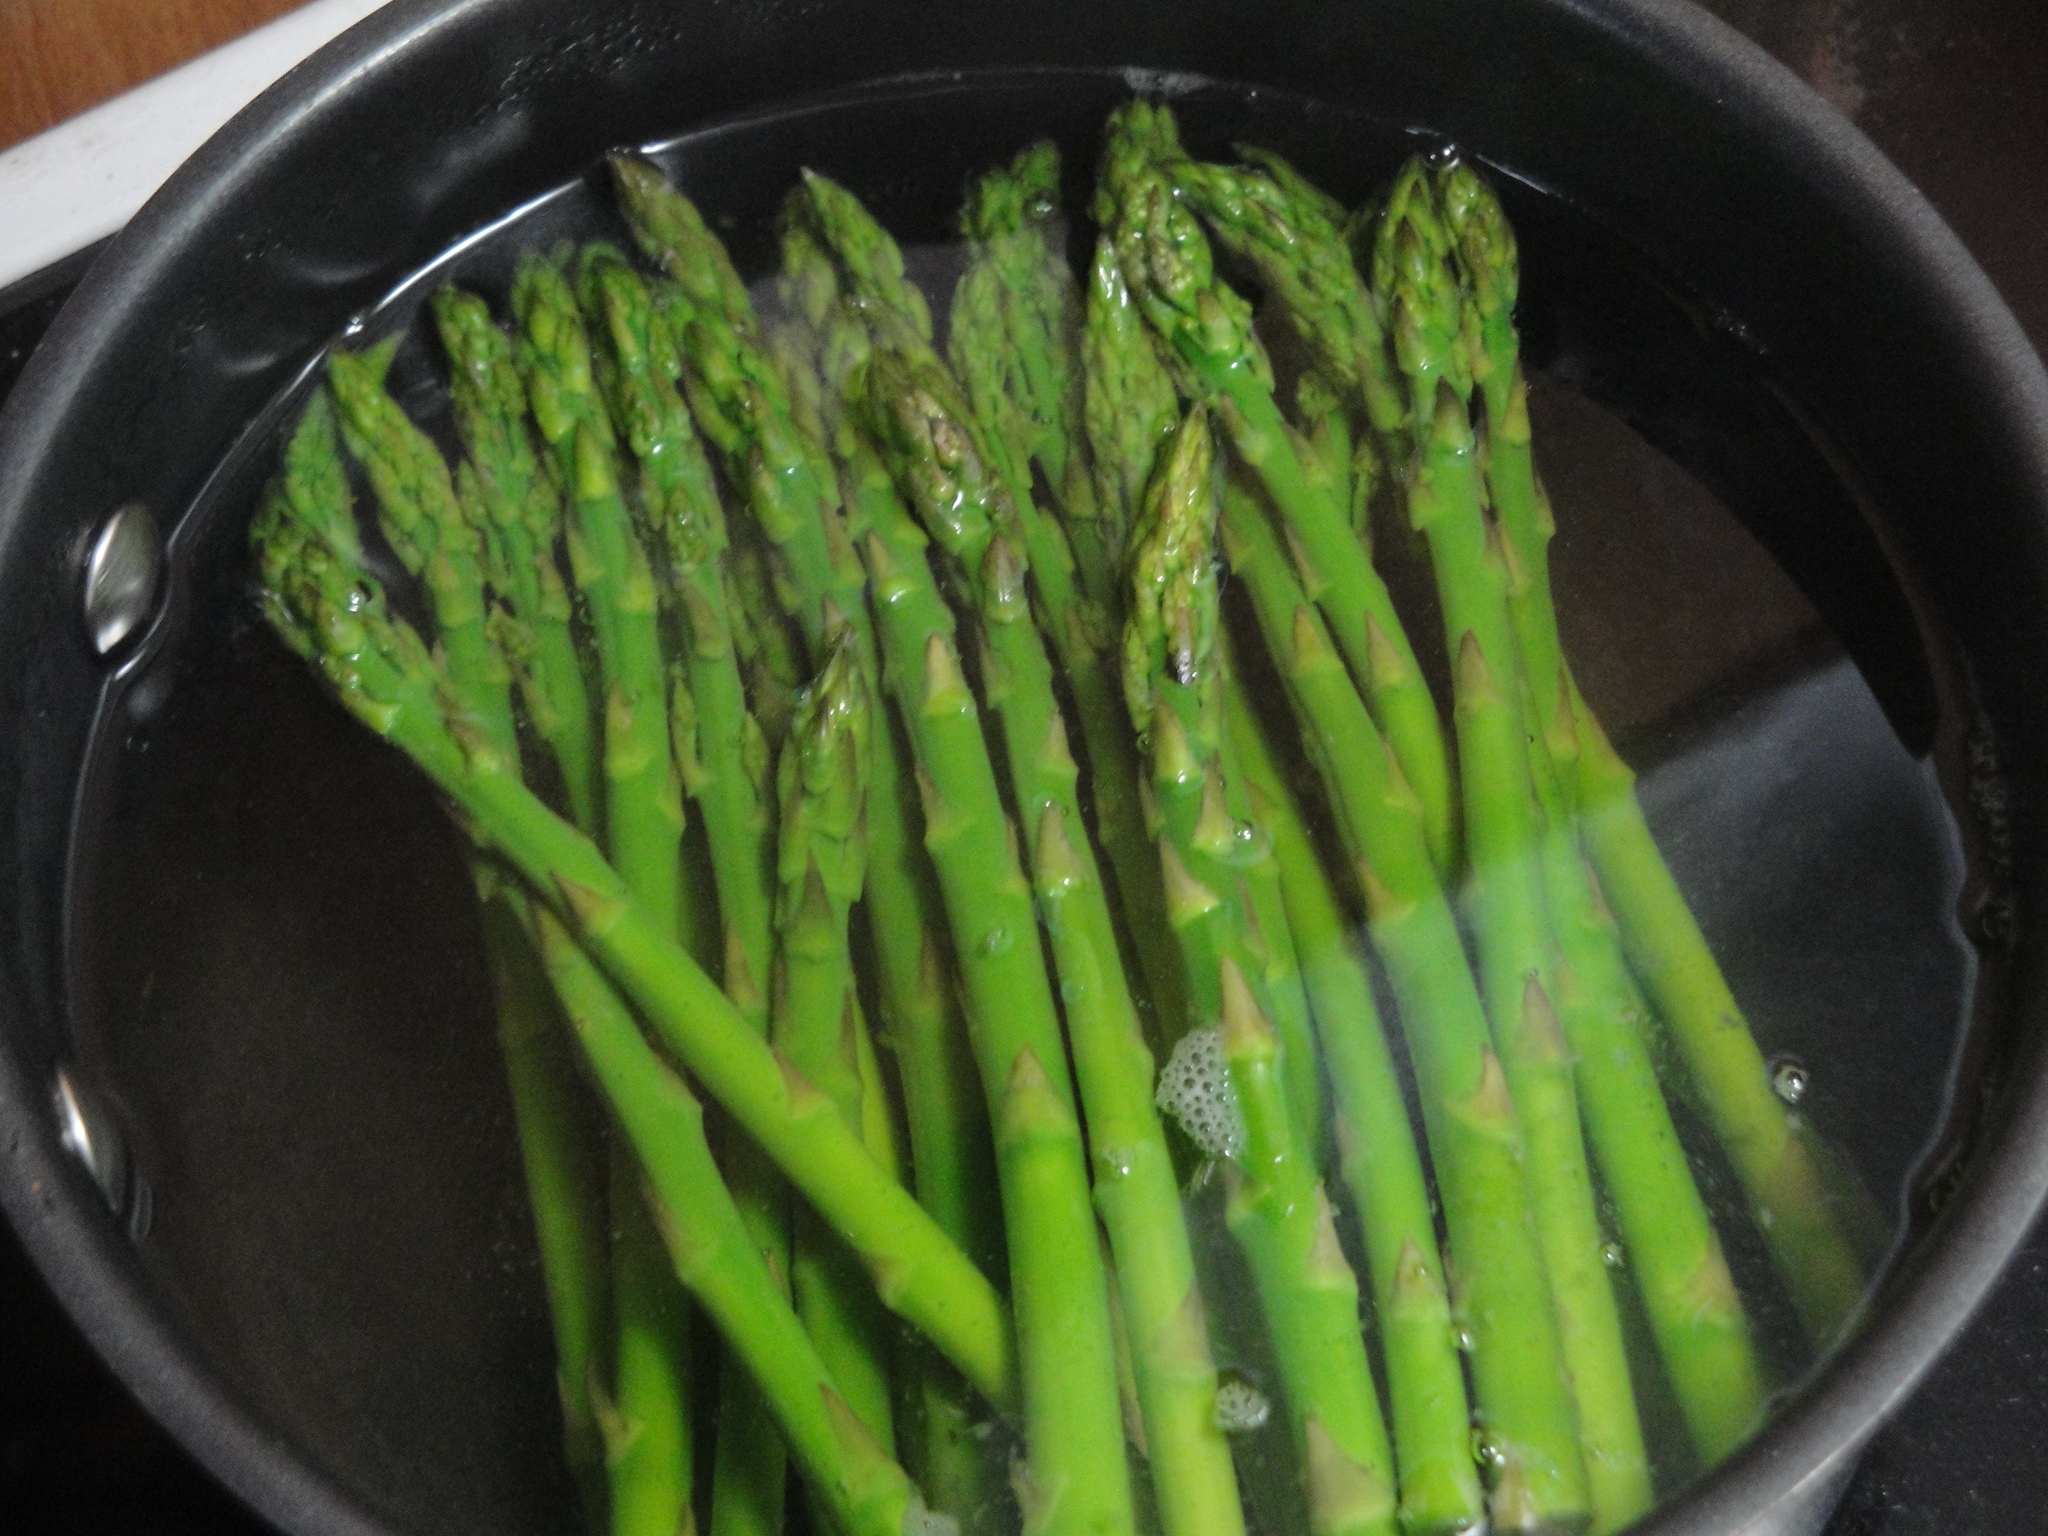 Heat A Large Skillet Over Mediumhigh Heat Add Olive Oil To Pan; Swirl To  Coat Add Asparagus; Cook 1 Minute